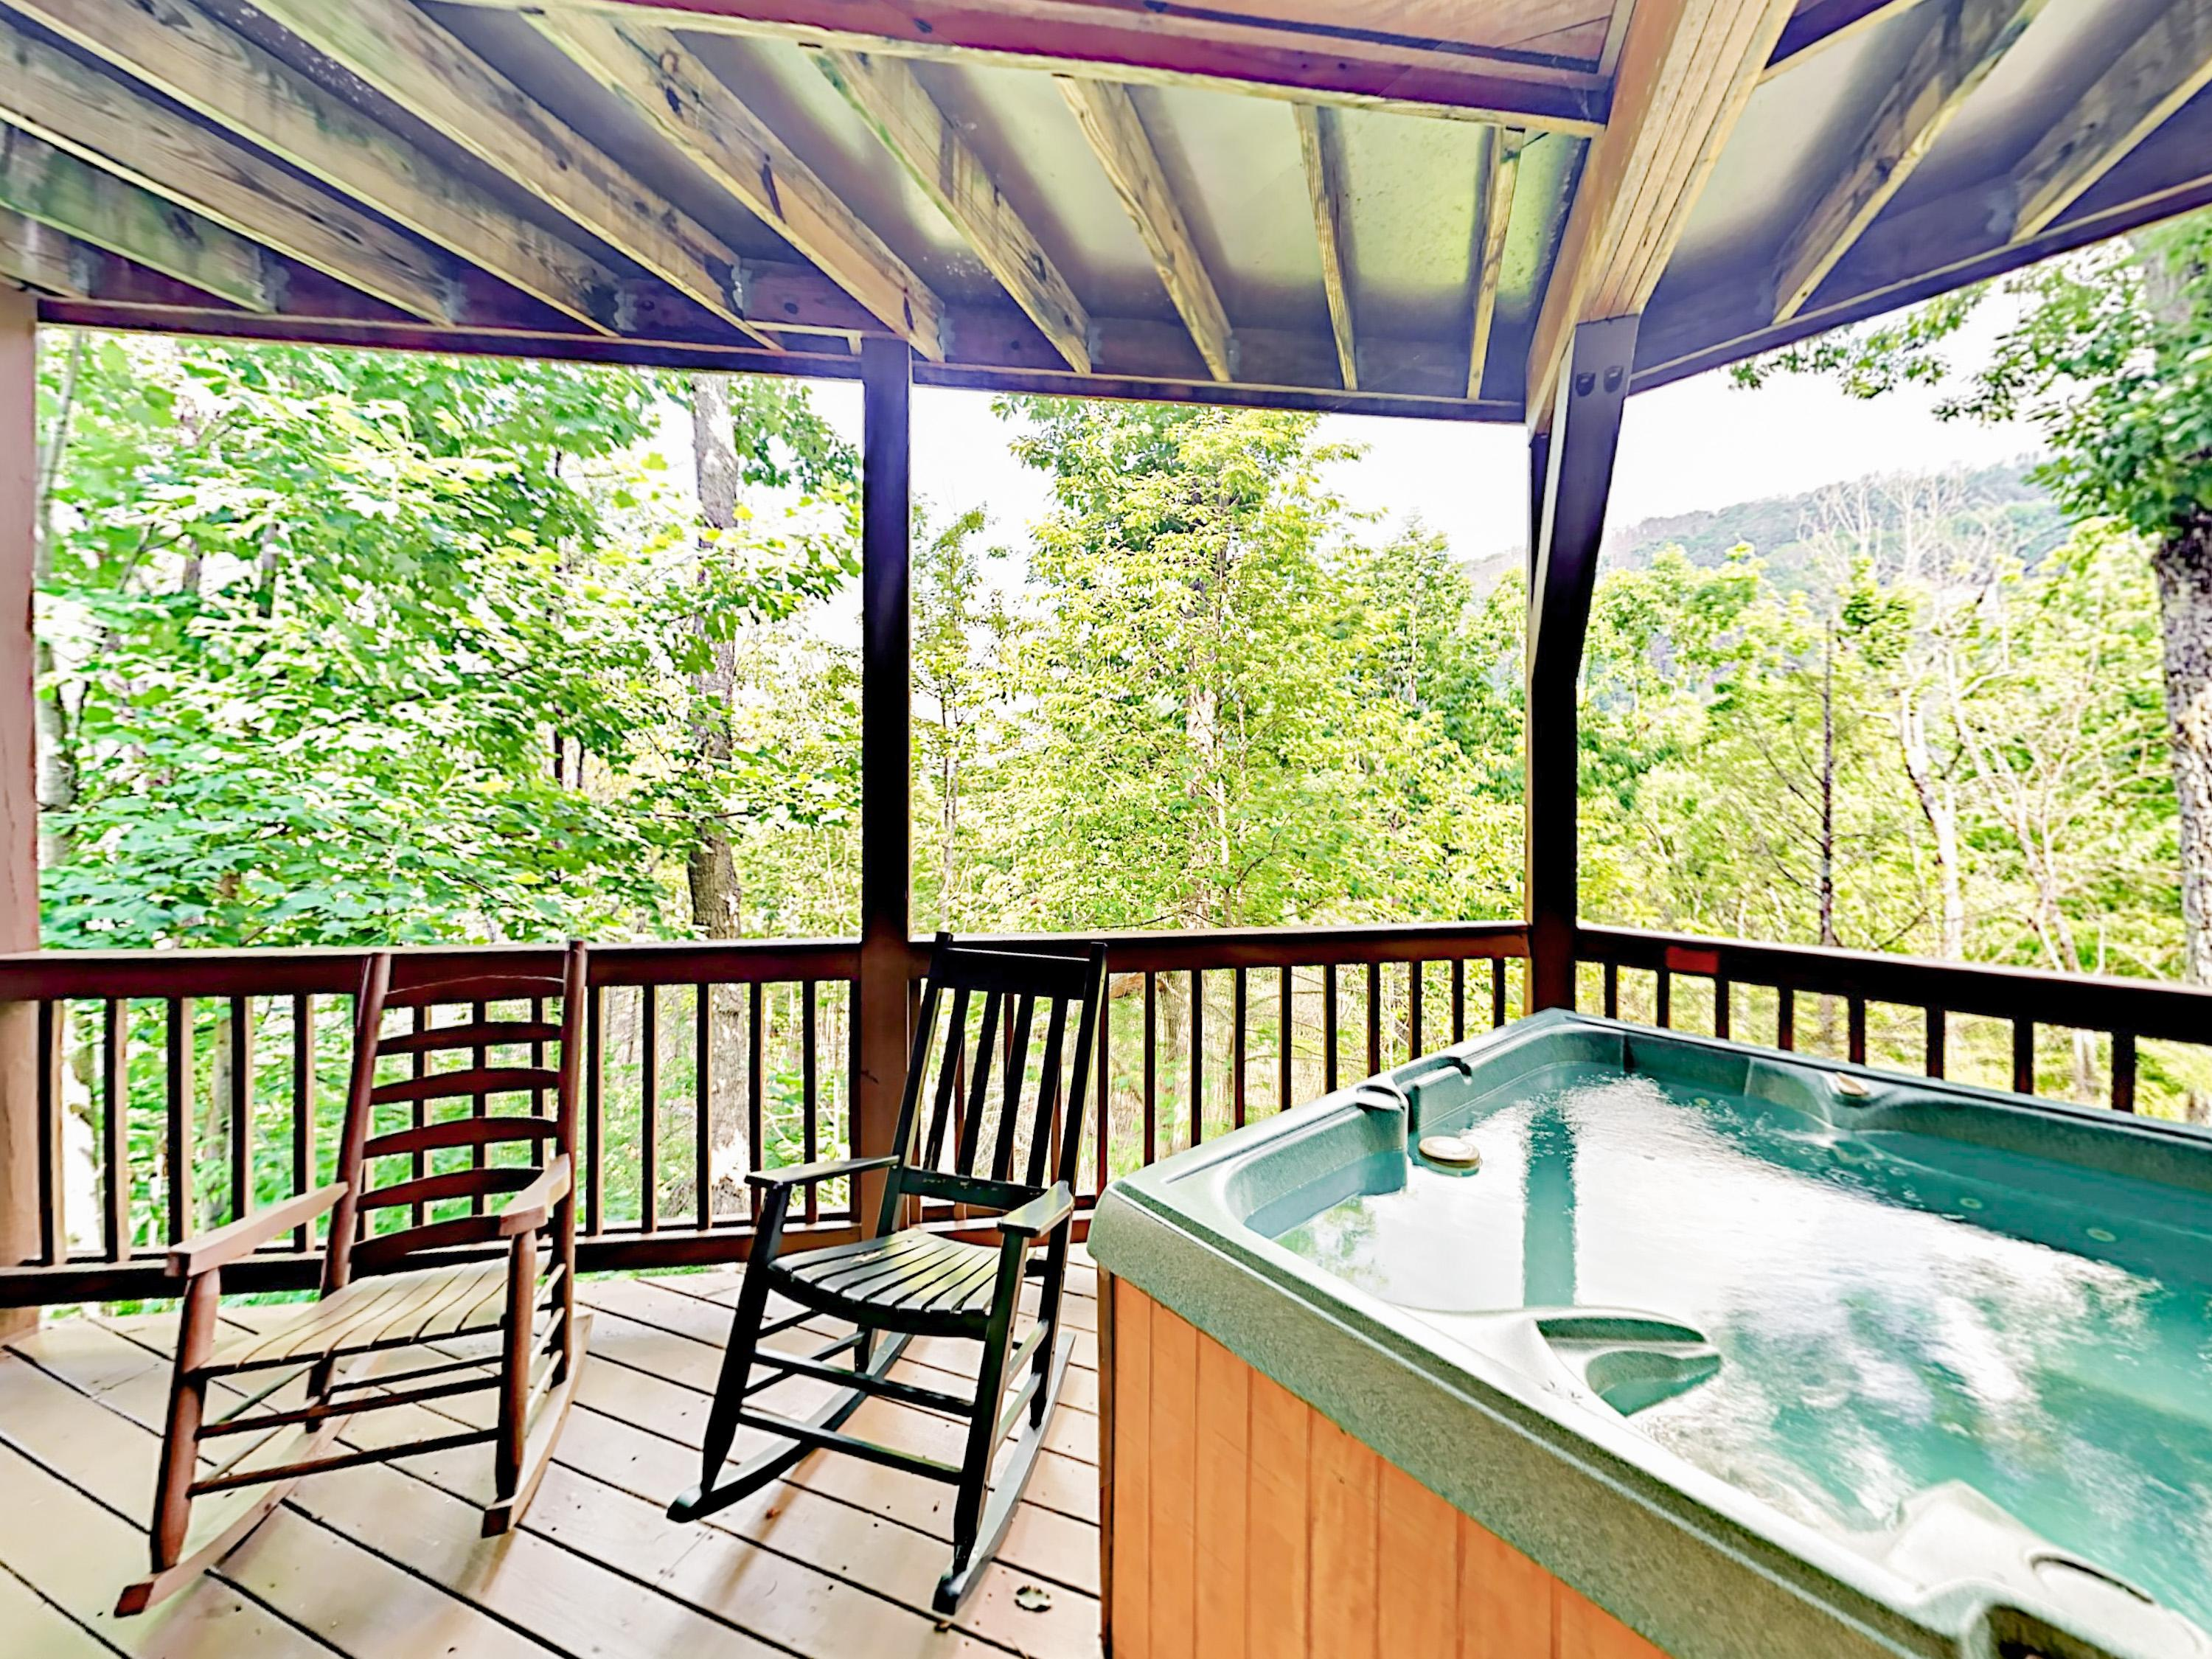 Soak in the private hot tub with treetop mountain views.